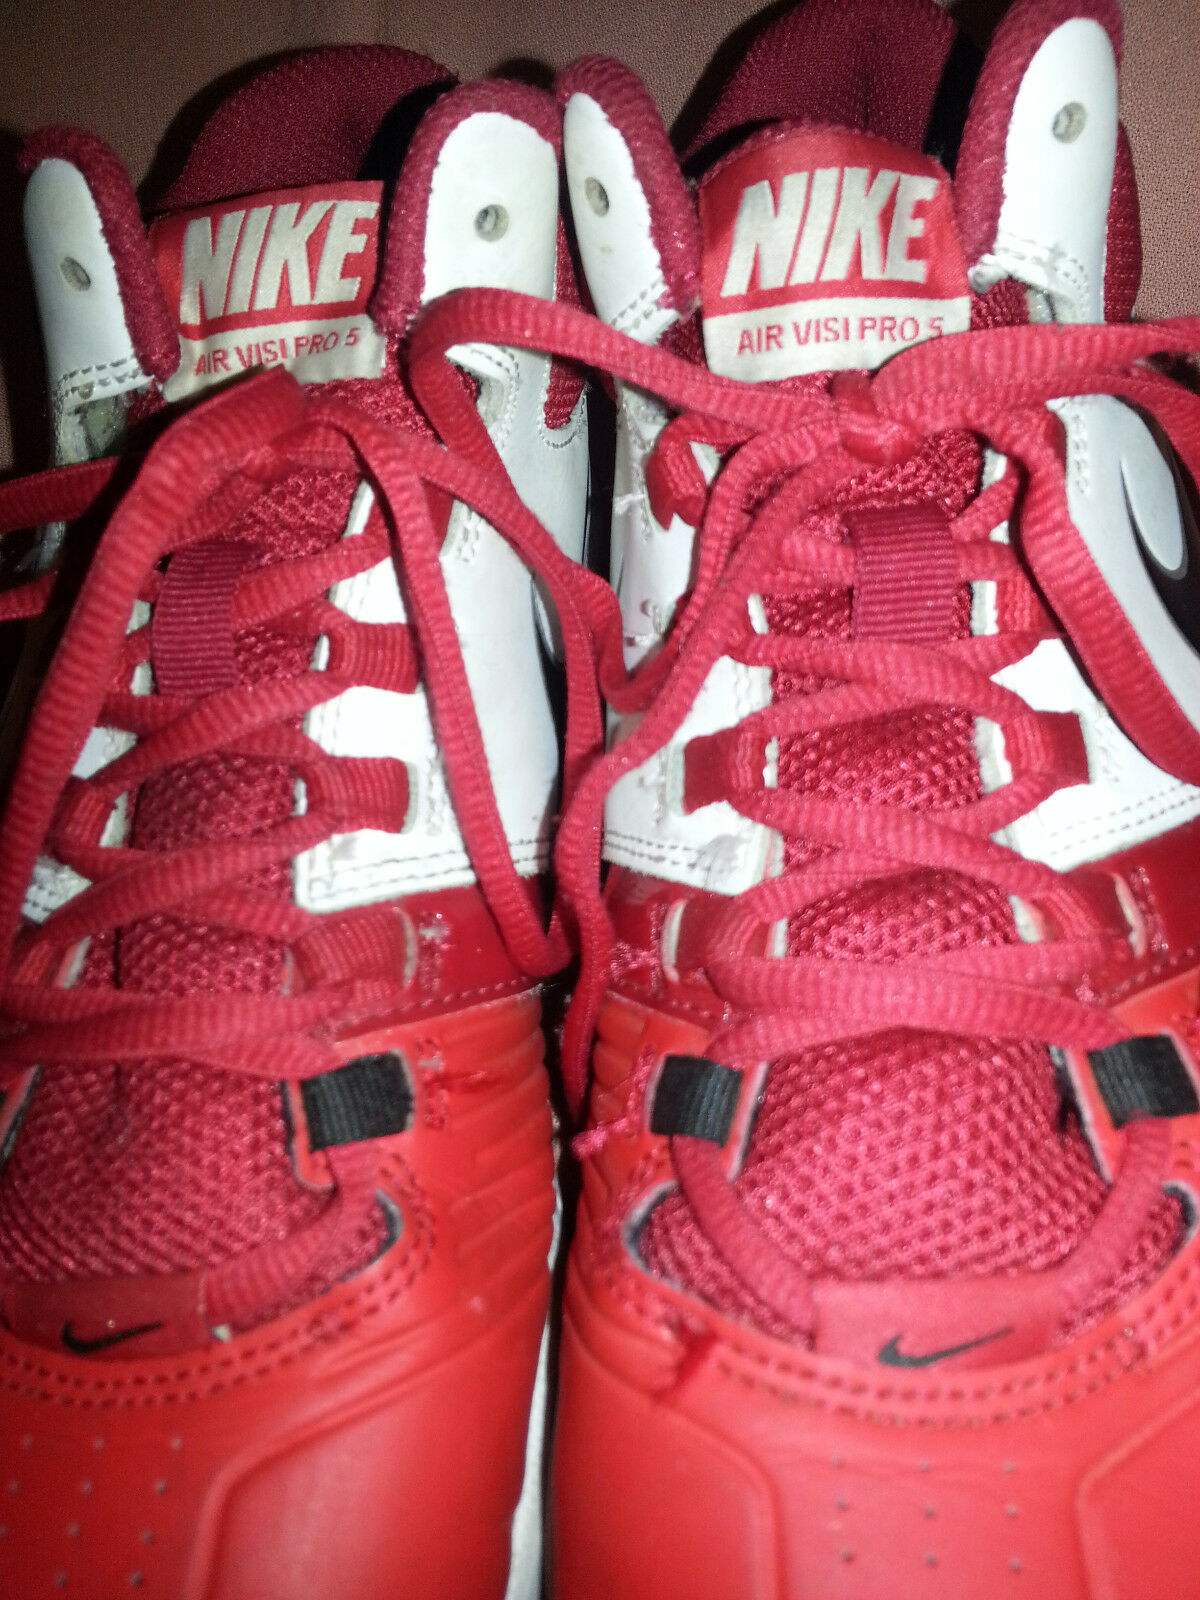 Nike Air Visi PRO 5  RED mans shoes size 7.5